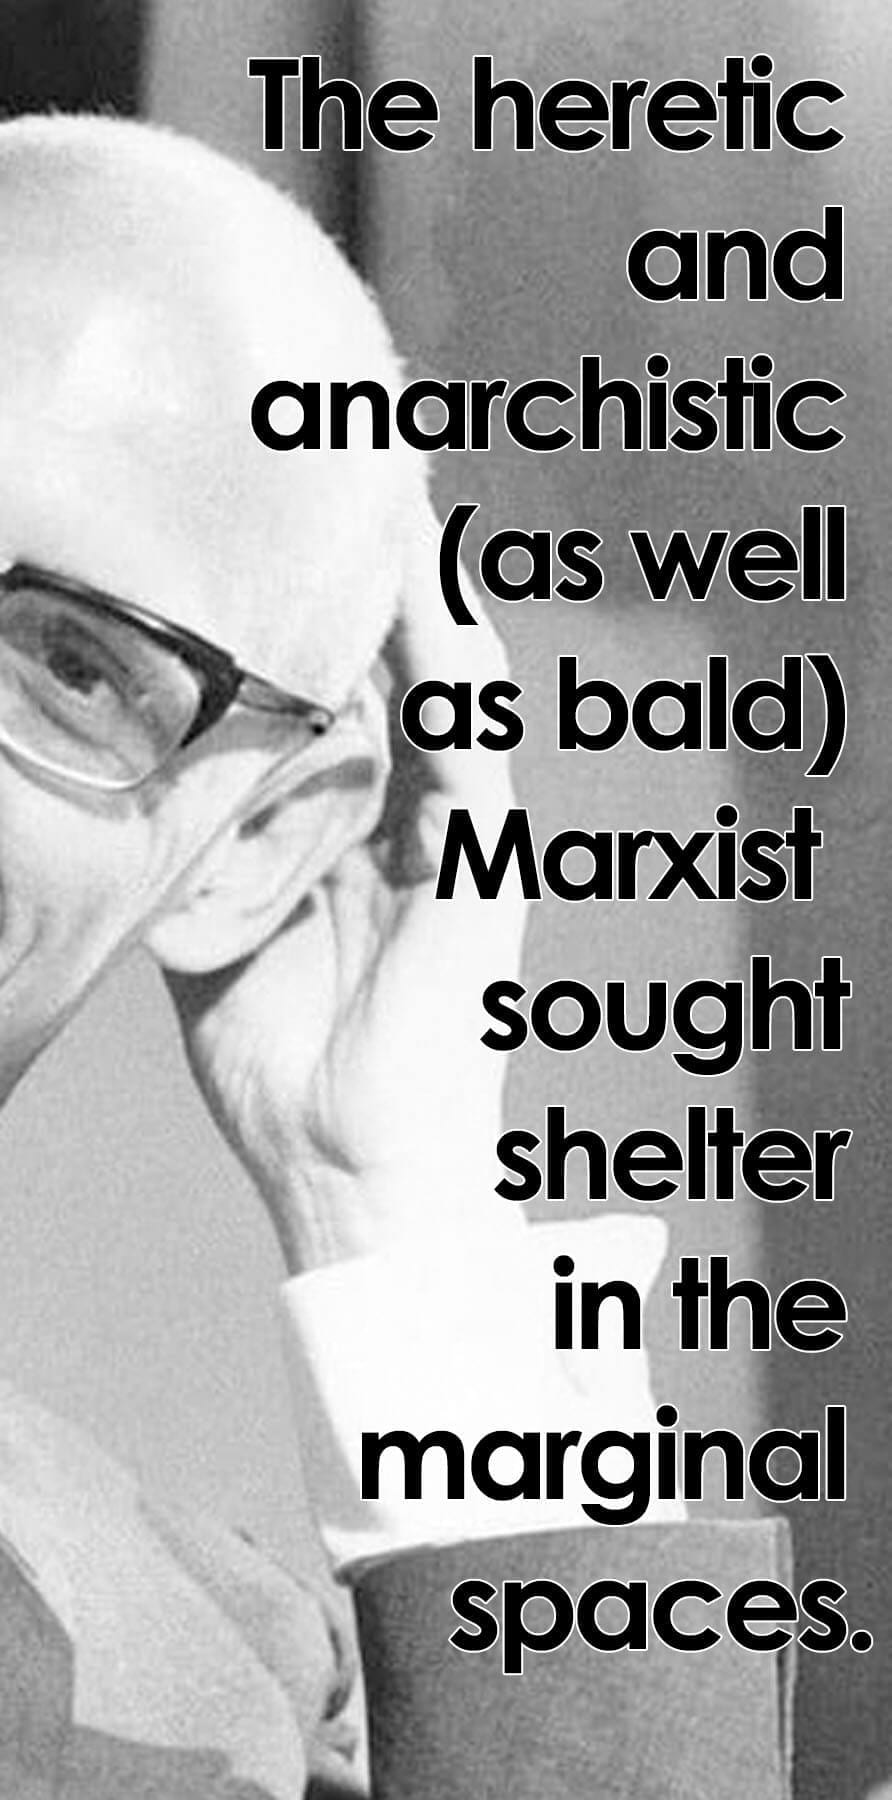 michel foucault in the margin